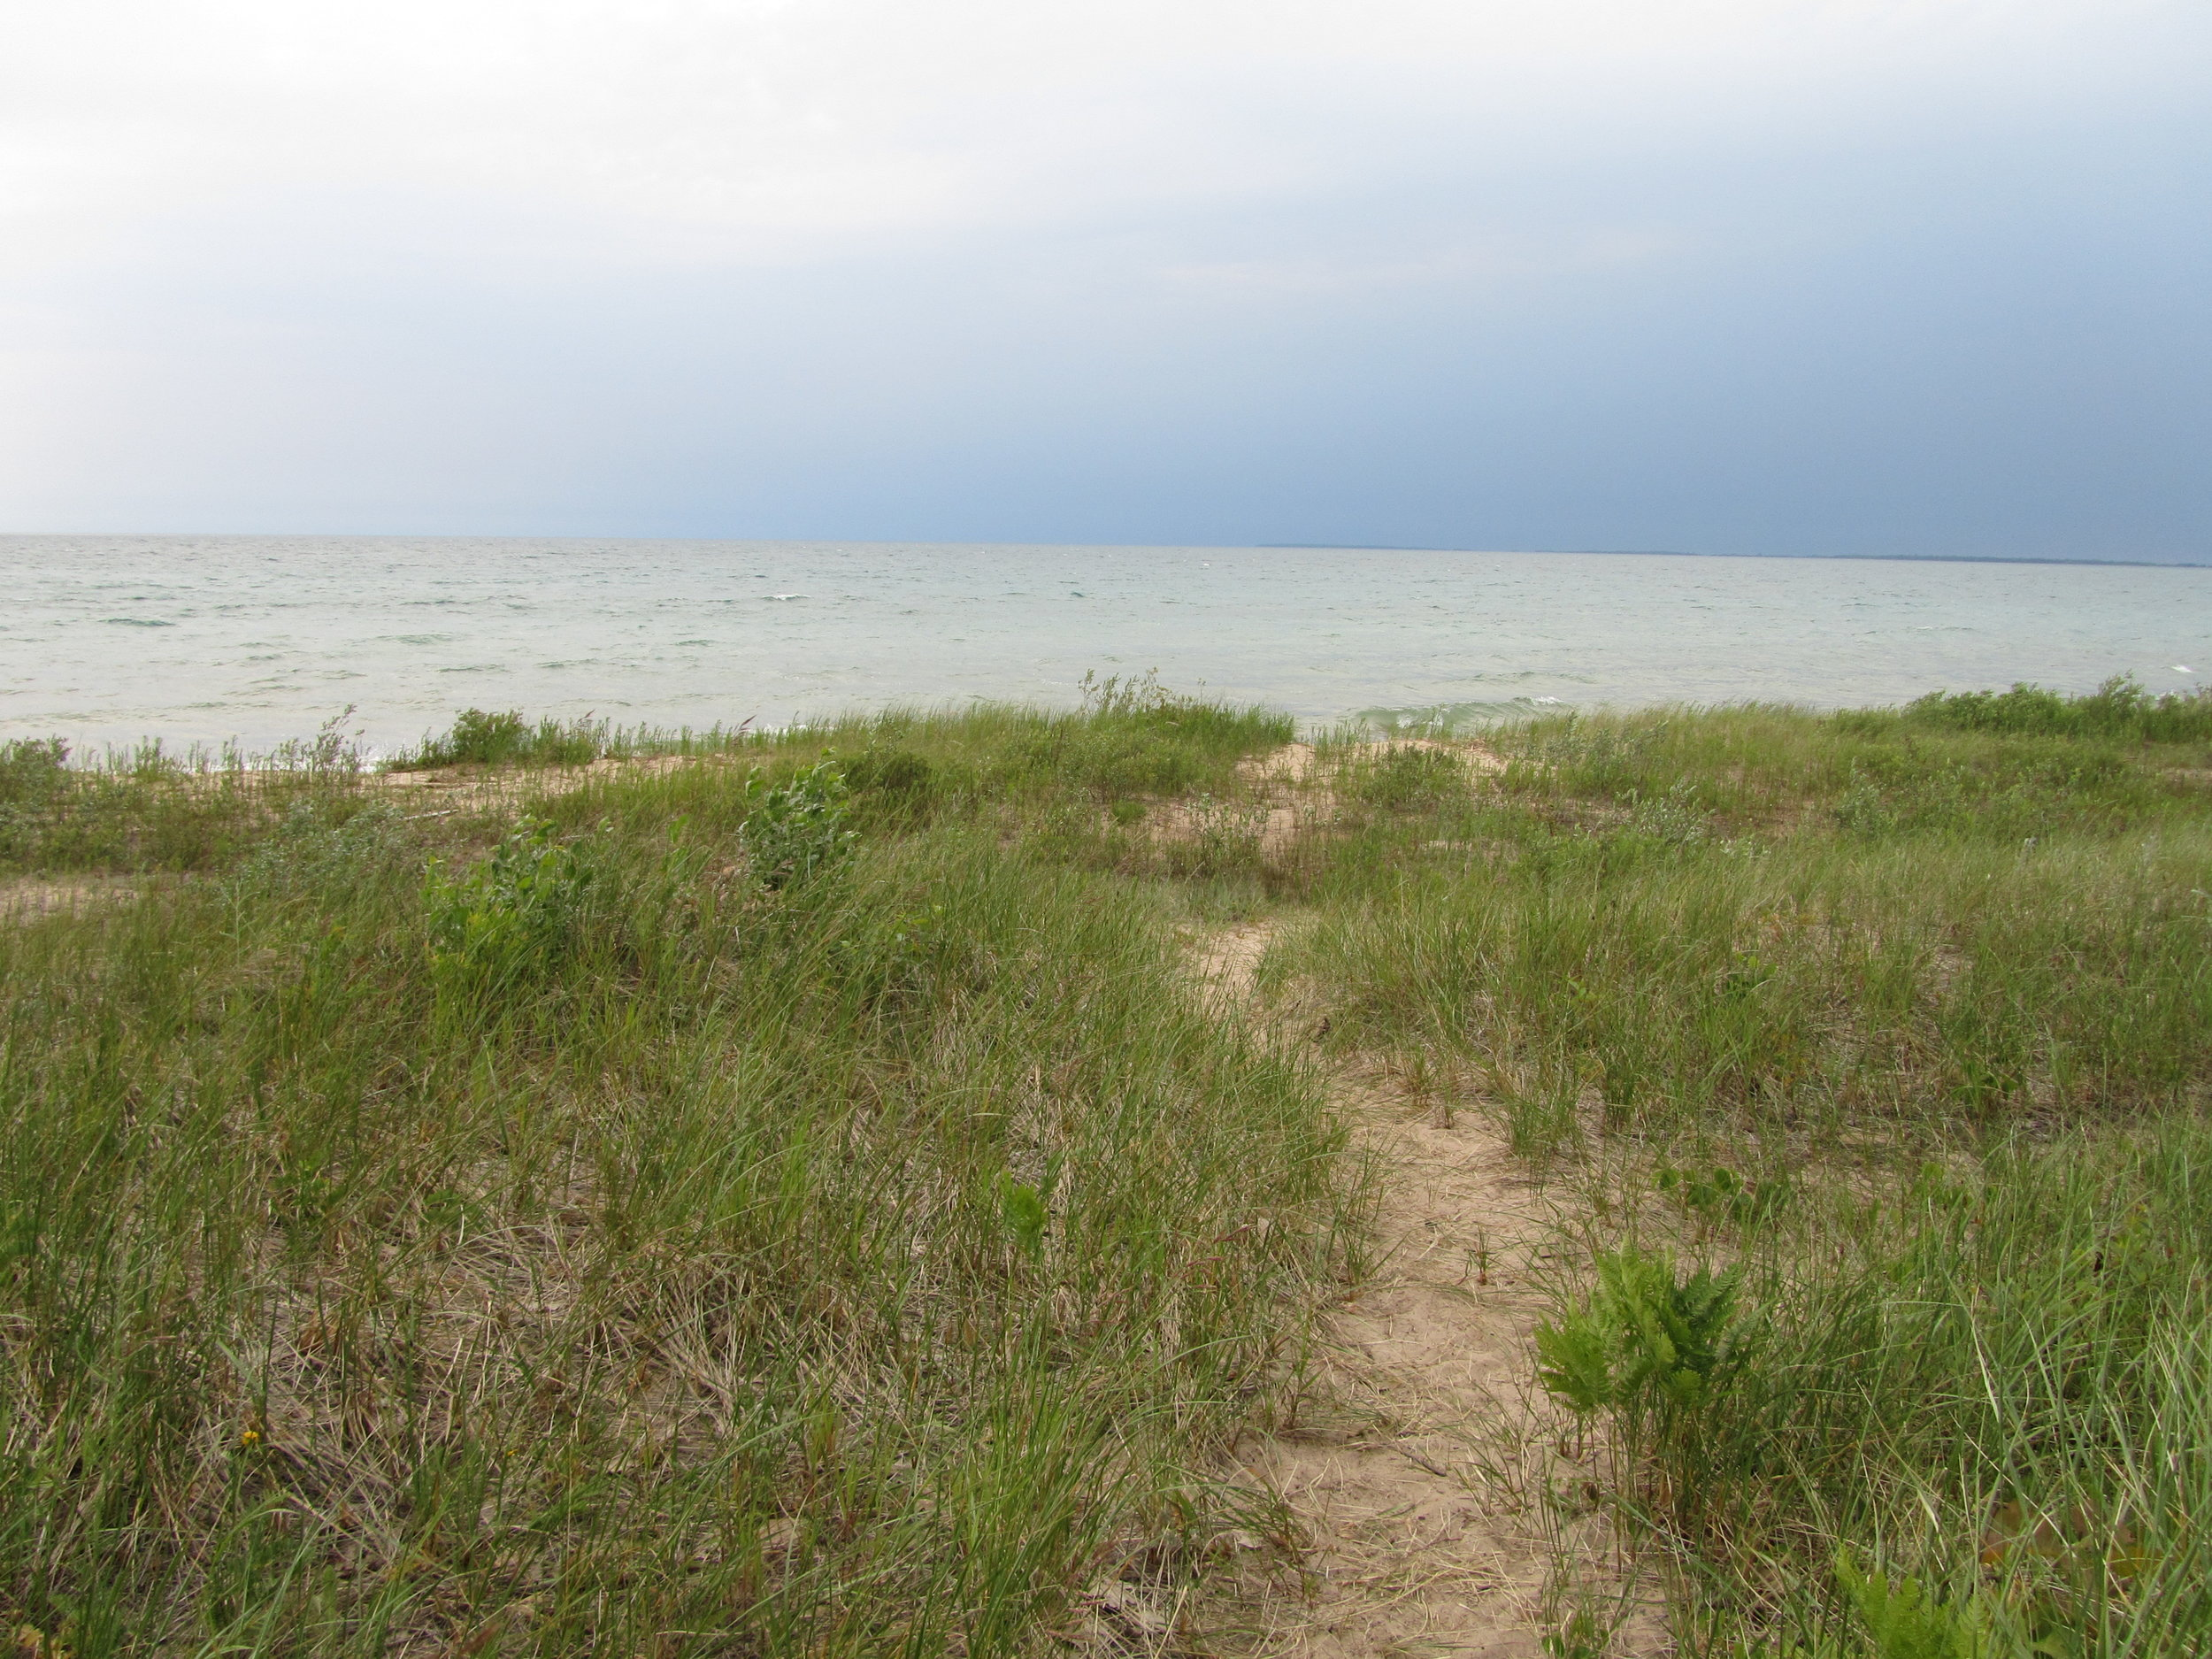 Lake Michigan, July 2015